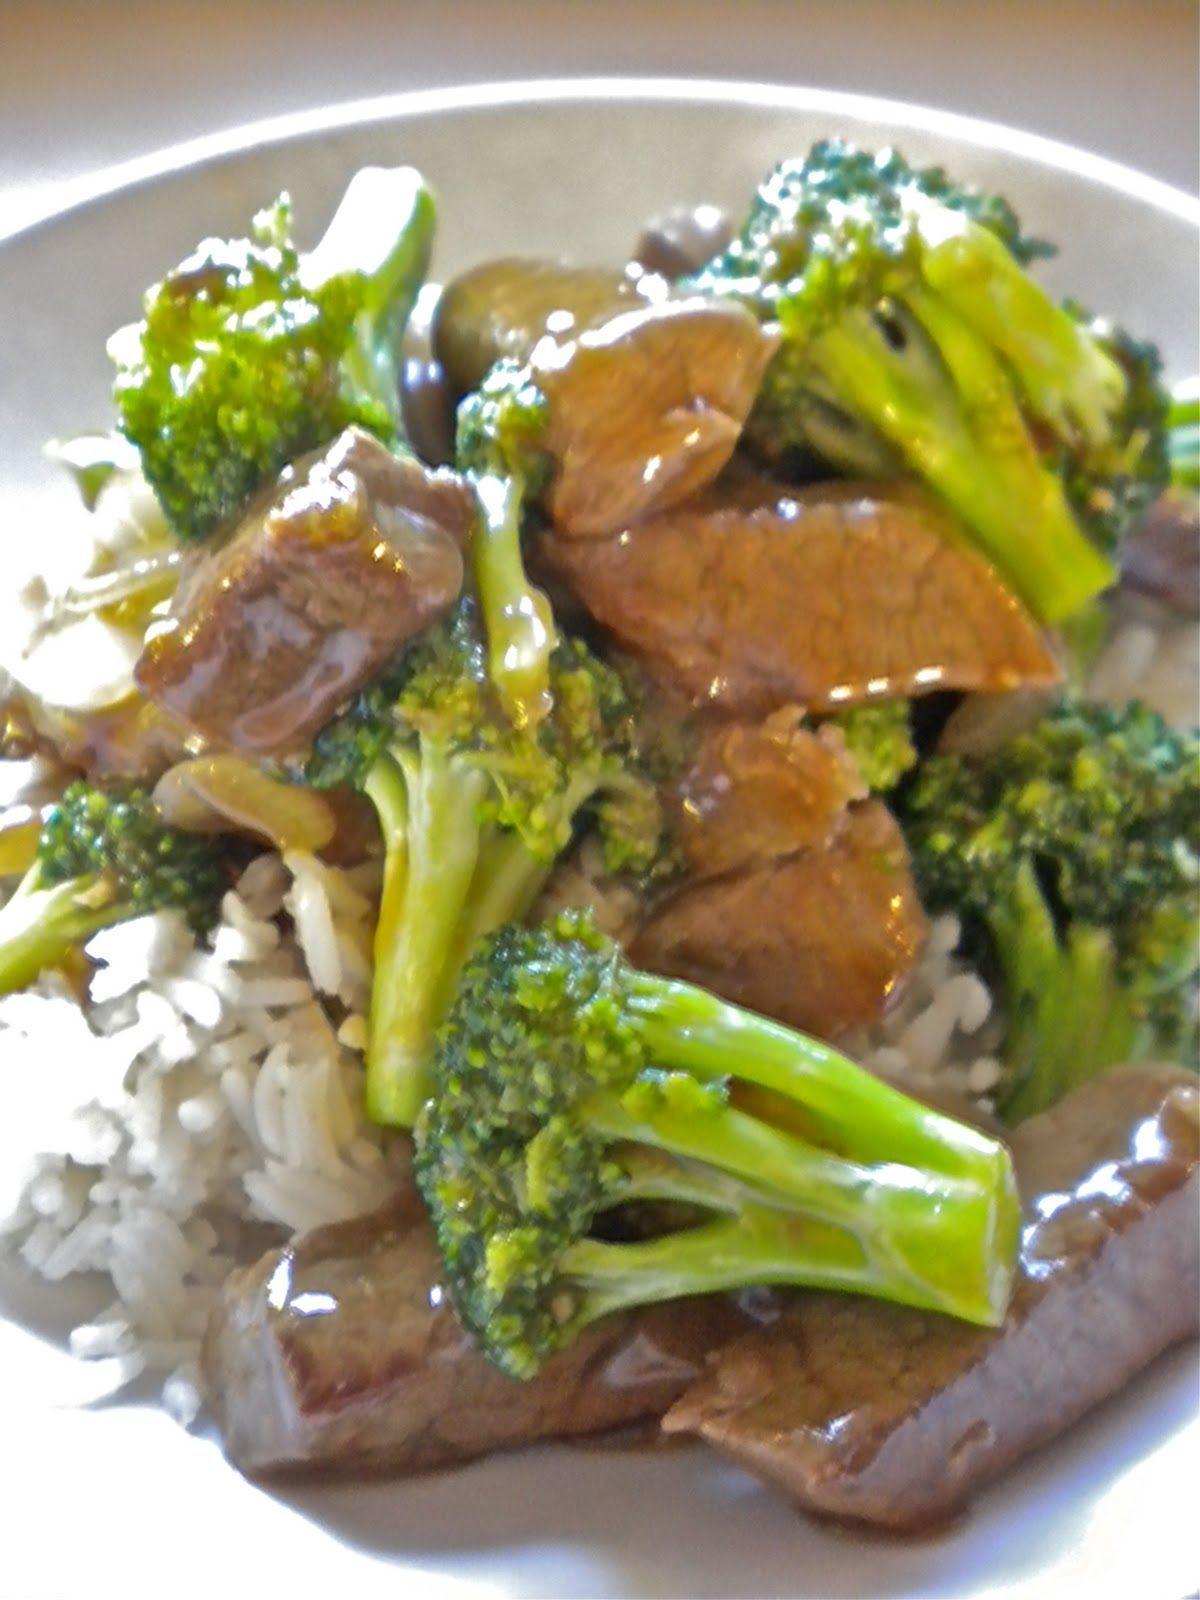 Broccoli Beef I #beefandbroccoli Round steak and broccoli are quickly cooked in a soy-ginger sauce. Serve over hot rice or noodles. instant pot beef and broccoli recipes | best beef and broccoli recipes | beef and broccoli recipes healthy | beef and broccoli recipes chinese | ground beef and broccoli recipes #worldcuisine #asian #beefandbroccoli #beefandbroccoli Broccoli Beef I #beefandbroccoli Round steak and broccoli are quickly cooked in a soy-ginger sauce. Serve over hot rice or noodles. ins #beefandbroccoli